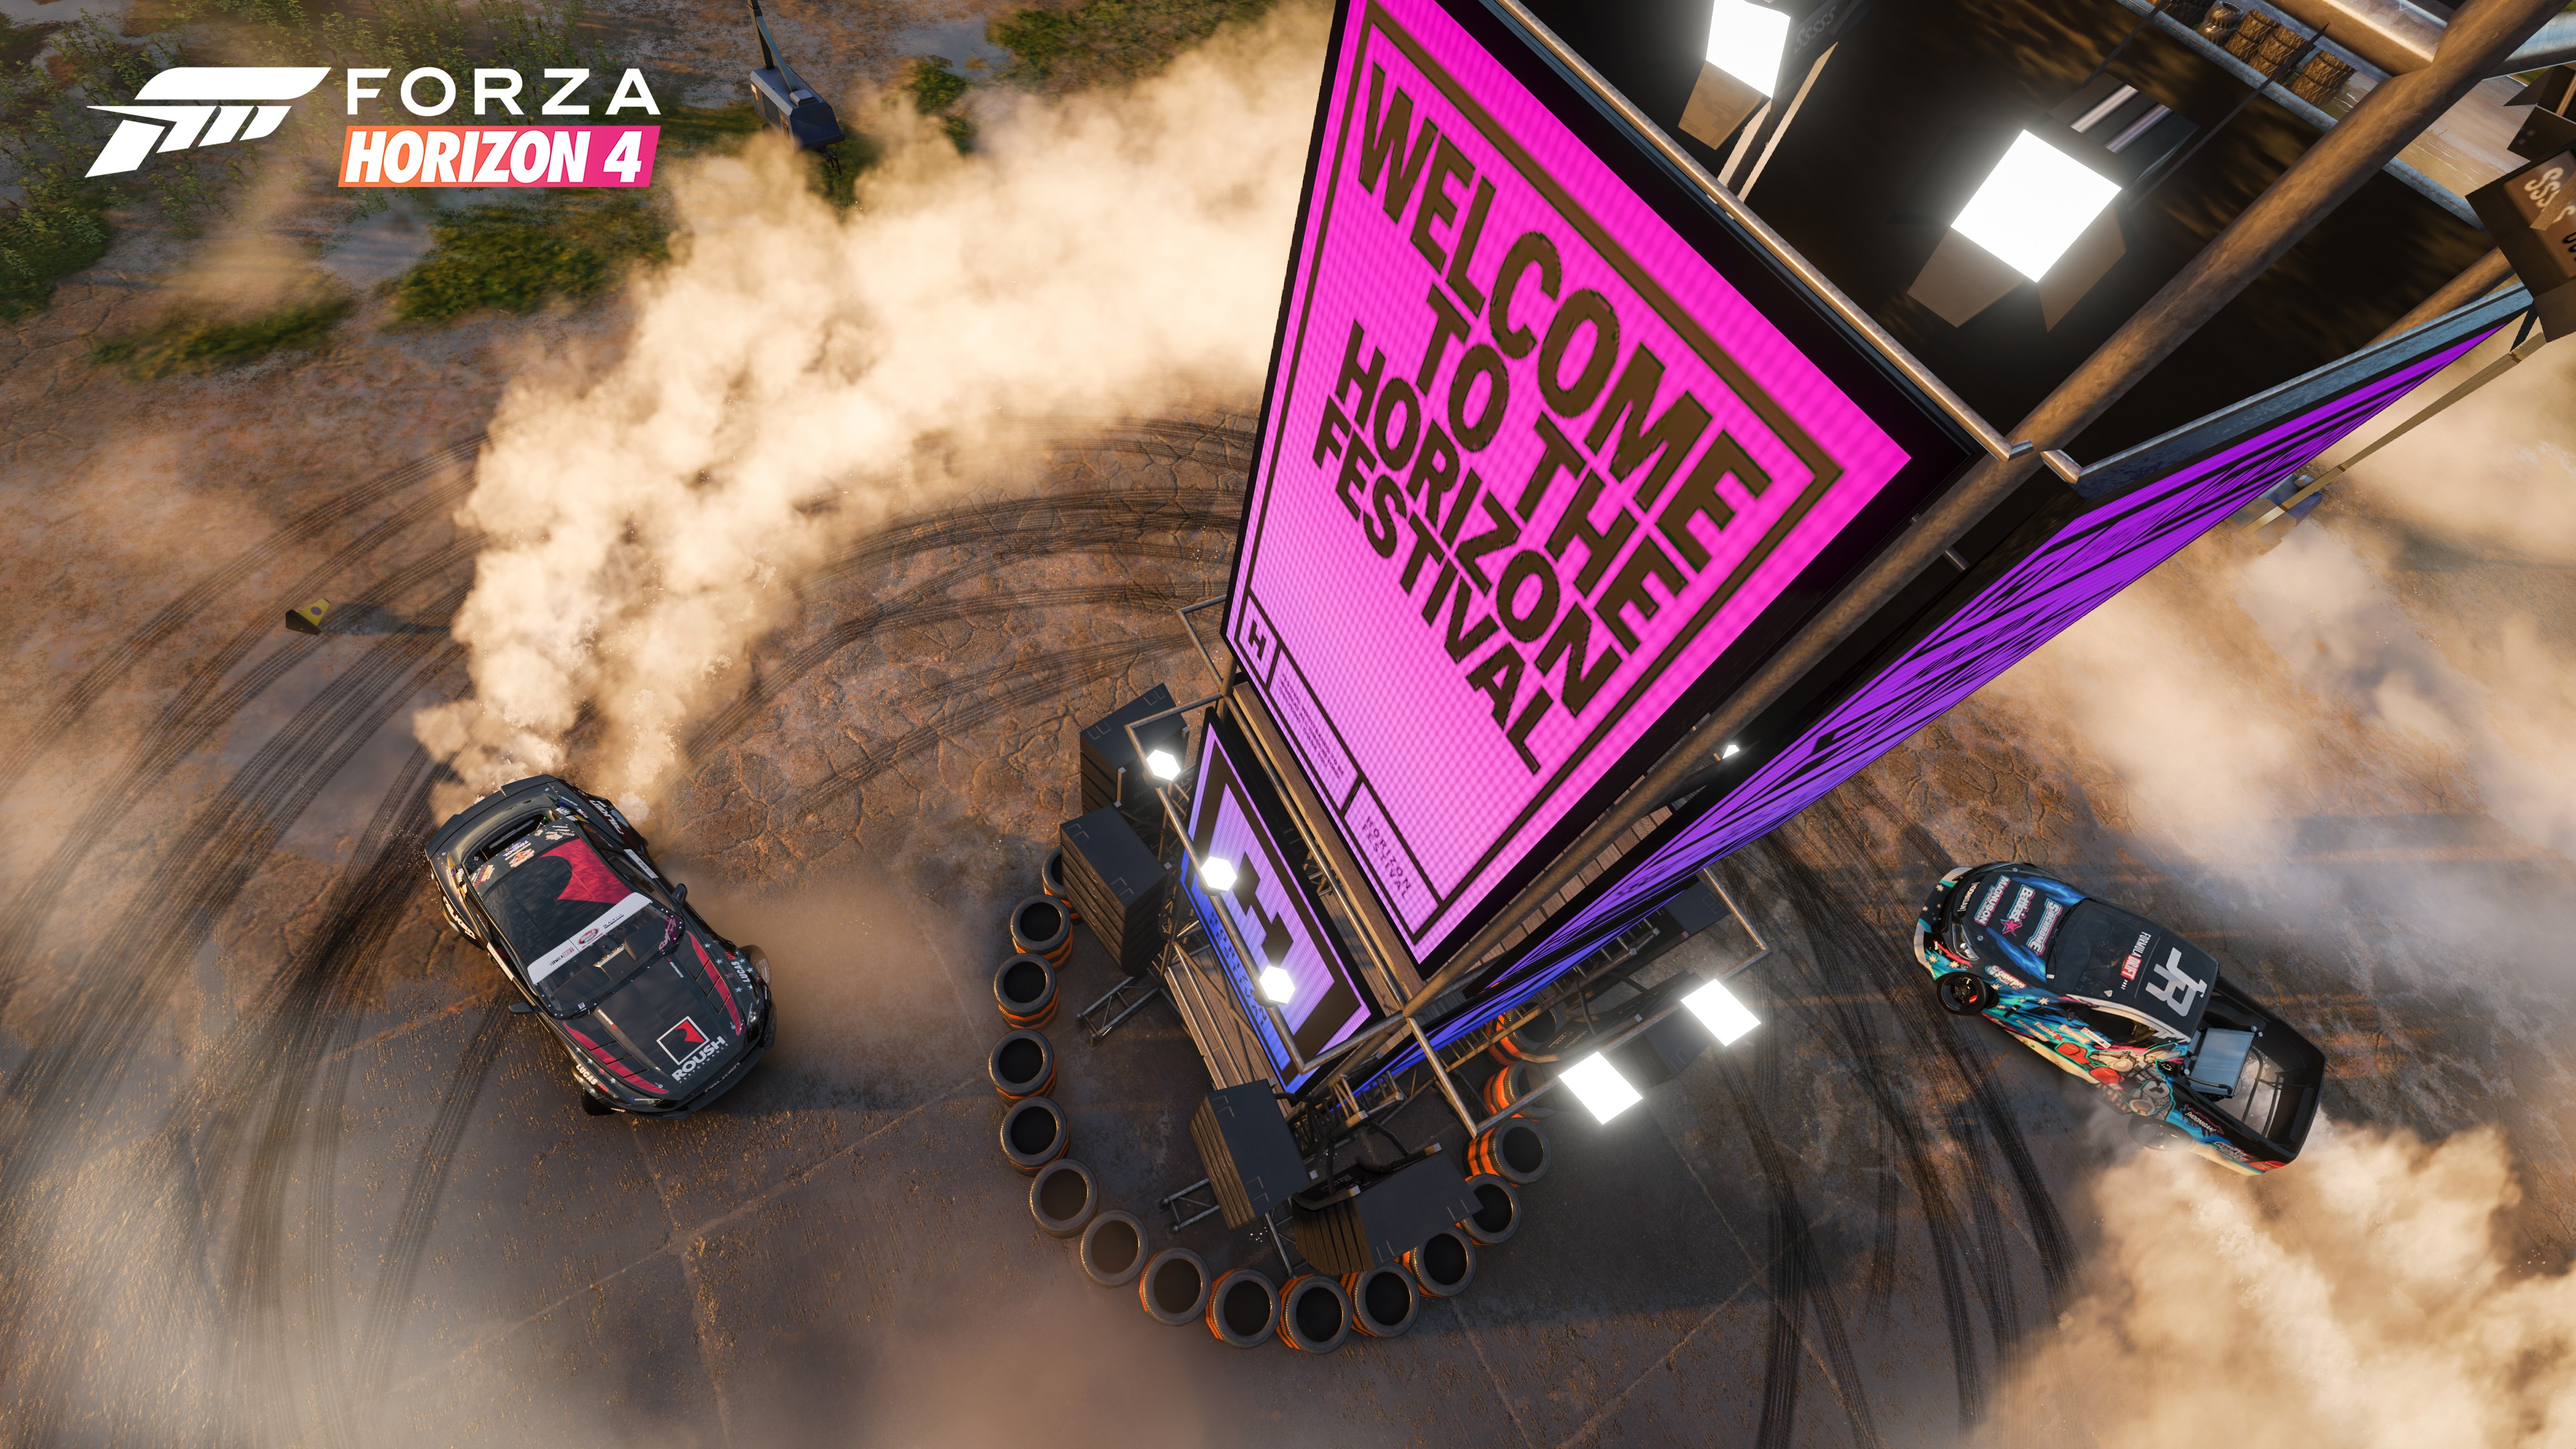 Forza Horizon 4 Welcome to the Horizon Festival (Foto: Divulgação)